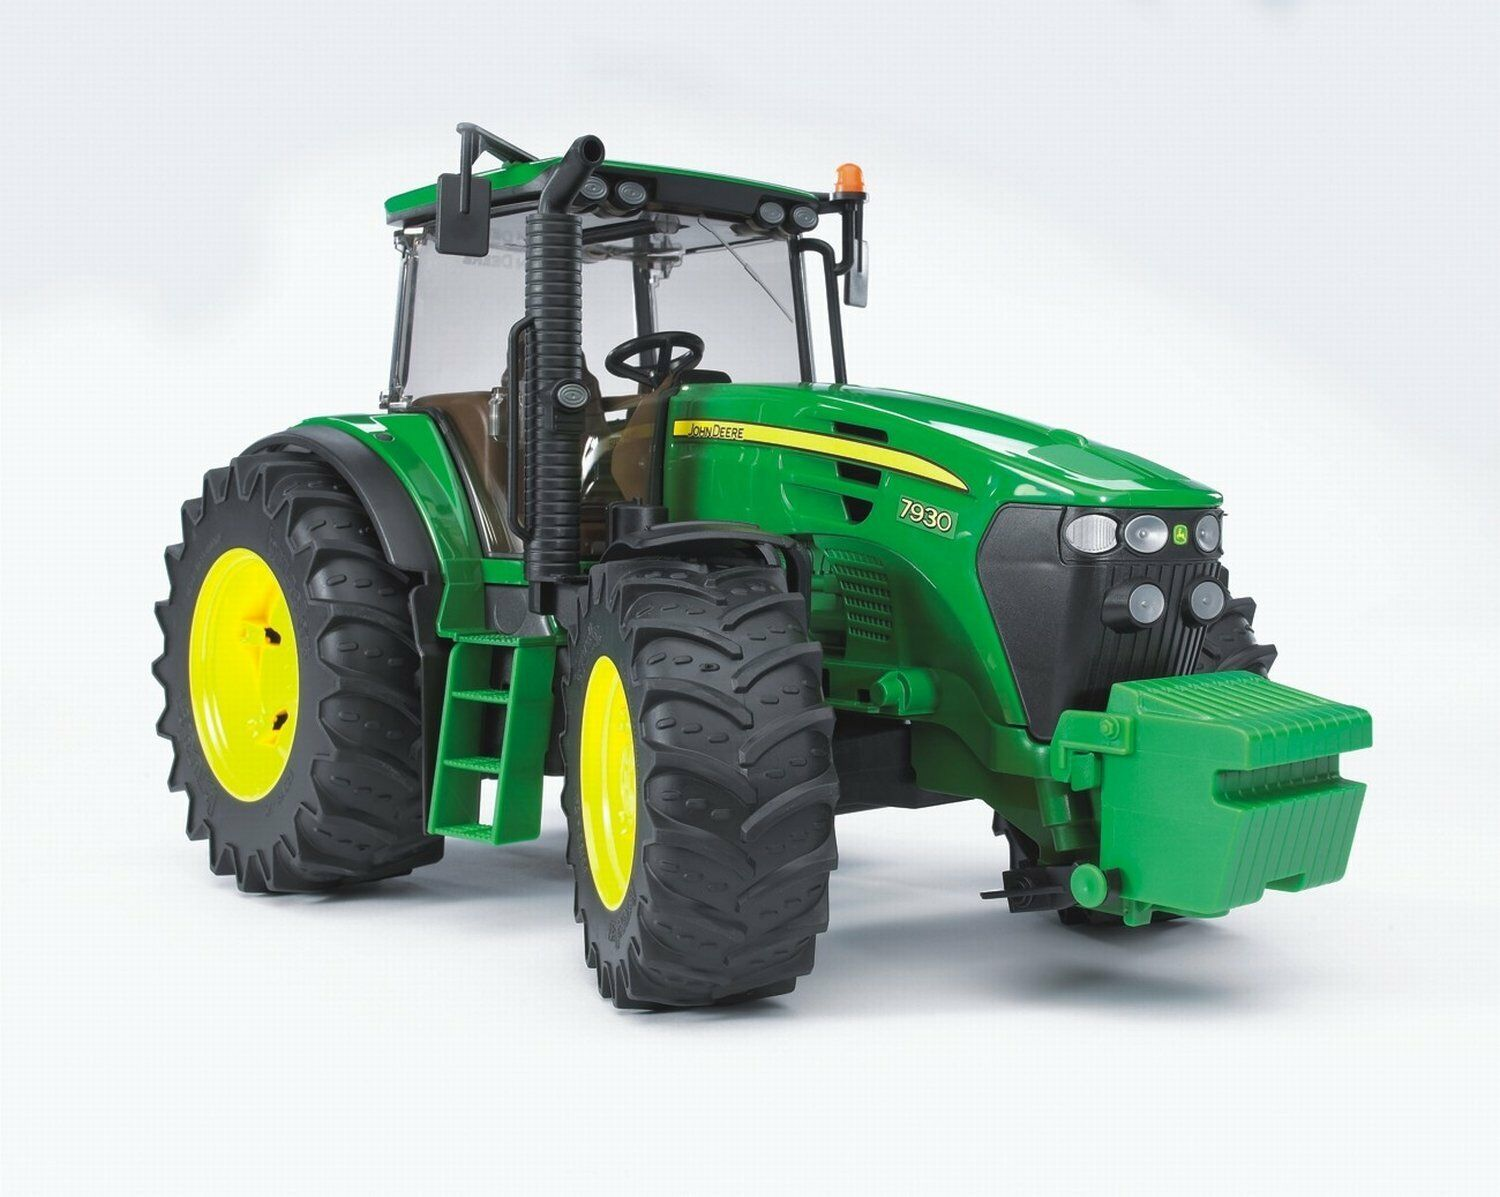 Bruder Toys John Deere 7930 tractor - green toy tractor, scale 1 16 - 03050